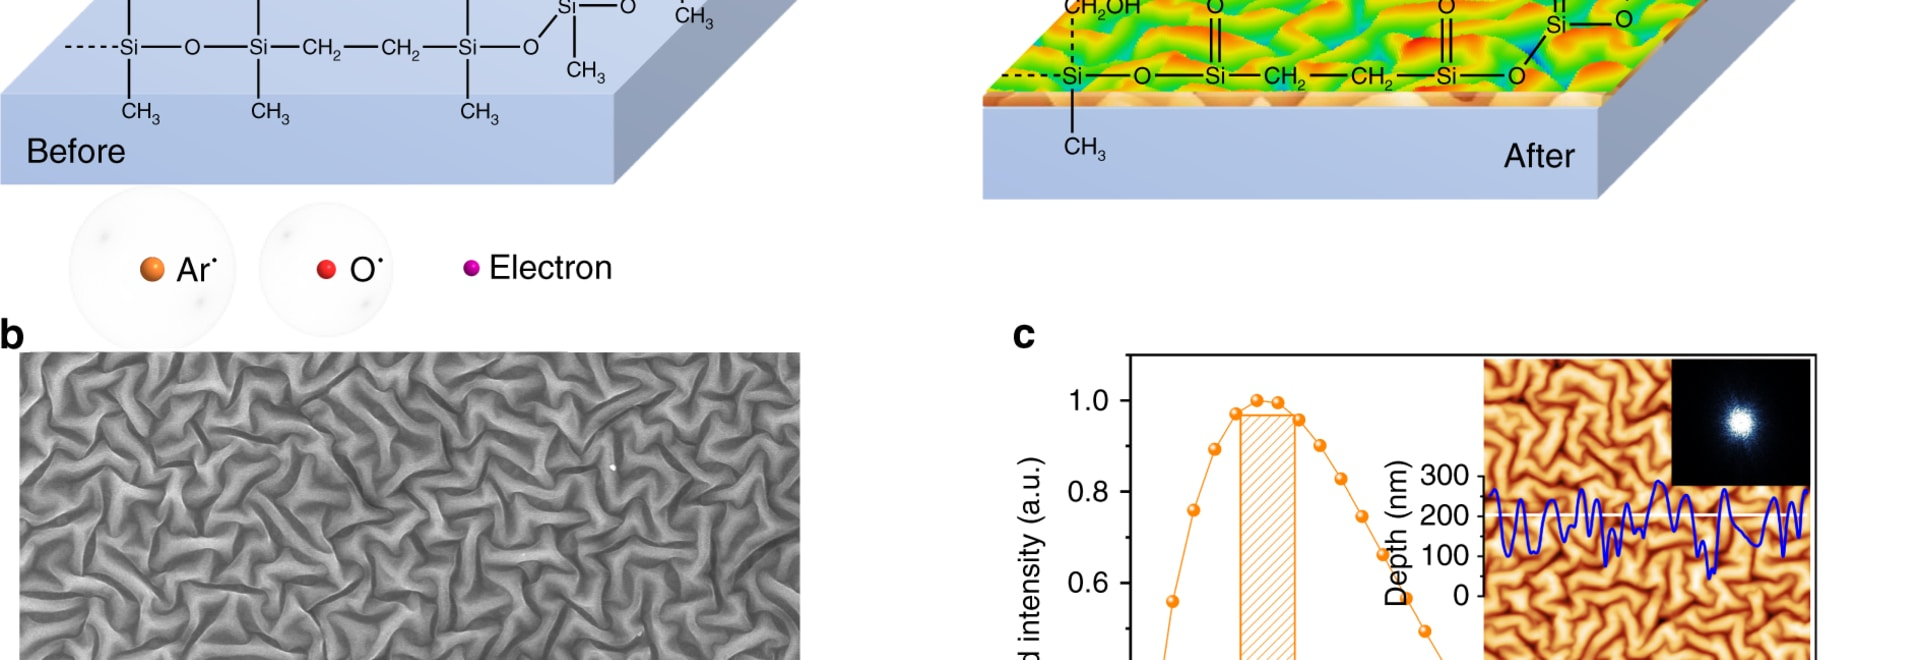 Schematic illustrations of RIE-induced nanostructures. a Thermally pretreated PDMS is modified by RIE with Ar, O2 ions and electrons via physical bombardments and chemical reactions. After the RIE ...